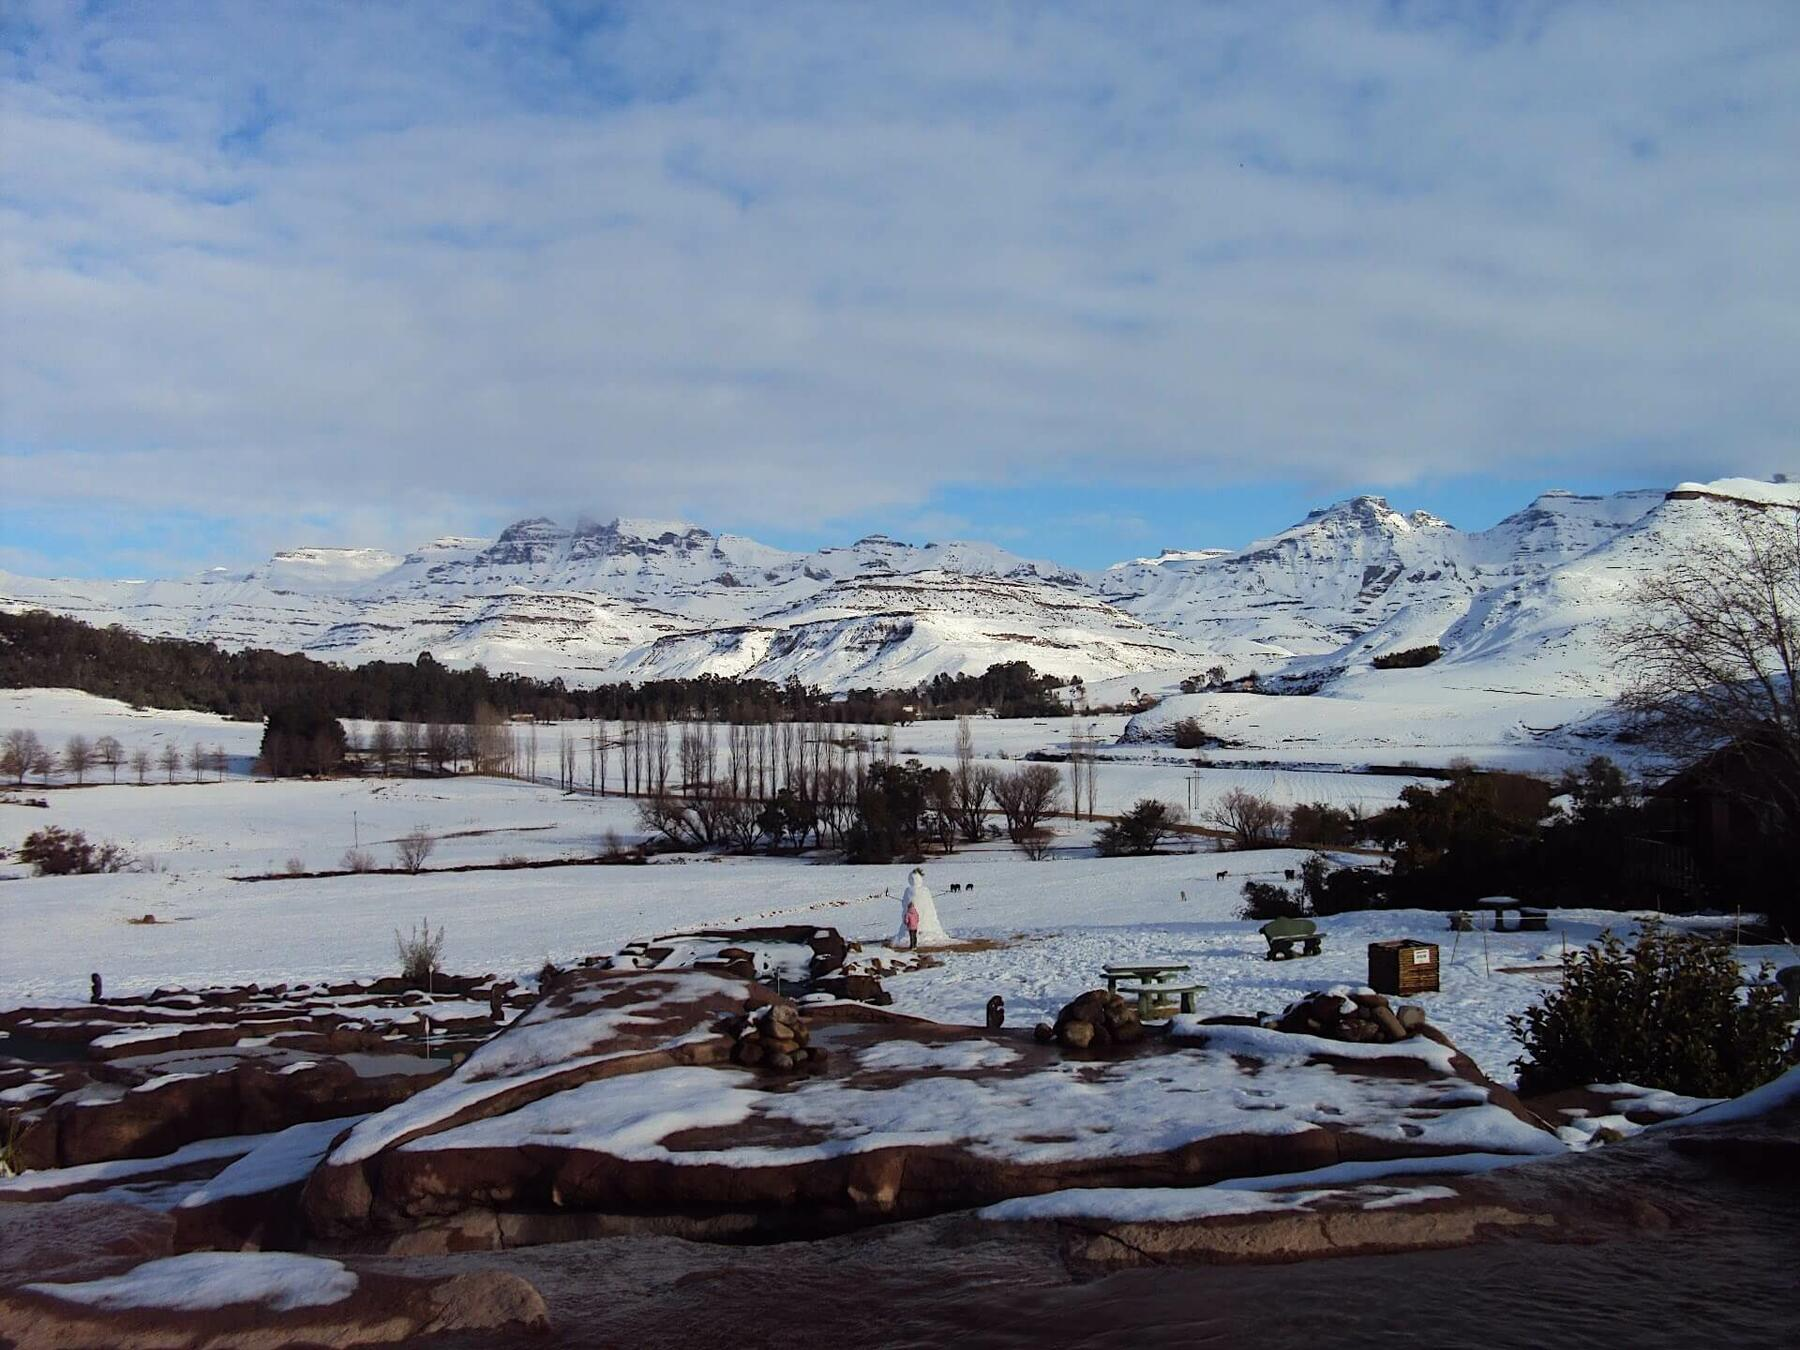 Bushman's Nek Landscape Covered With Snow